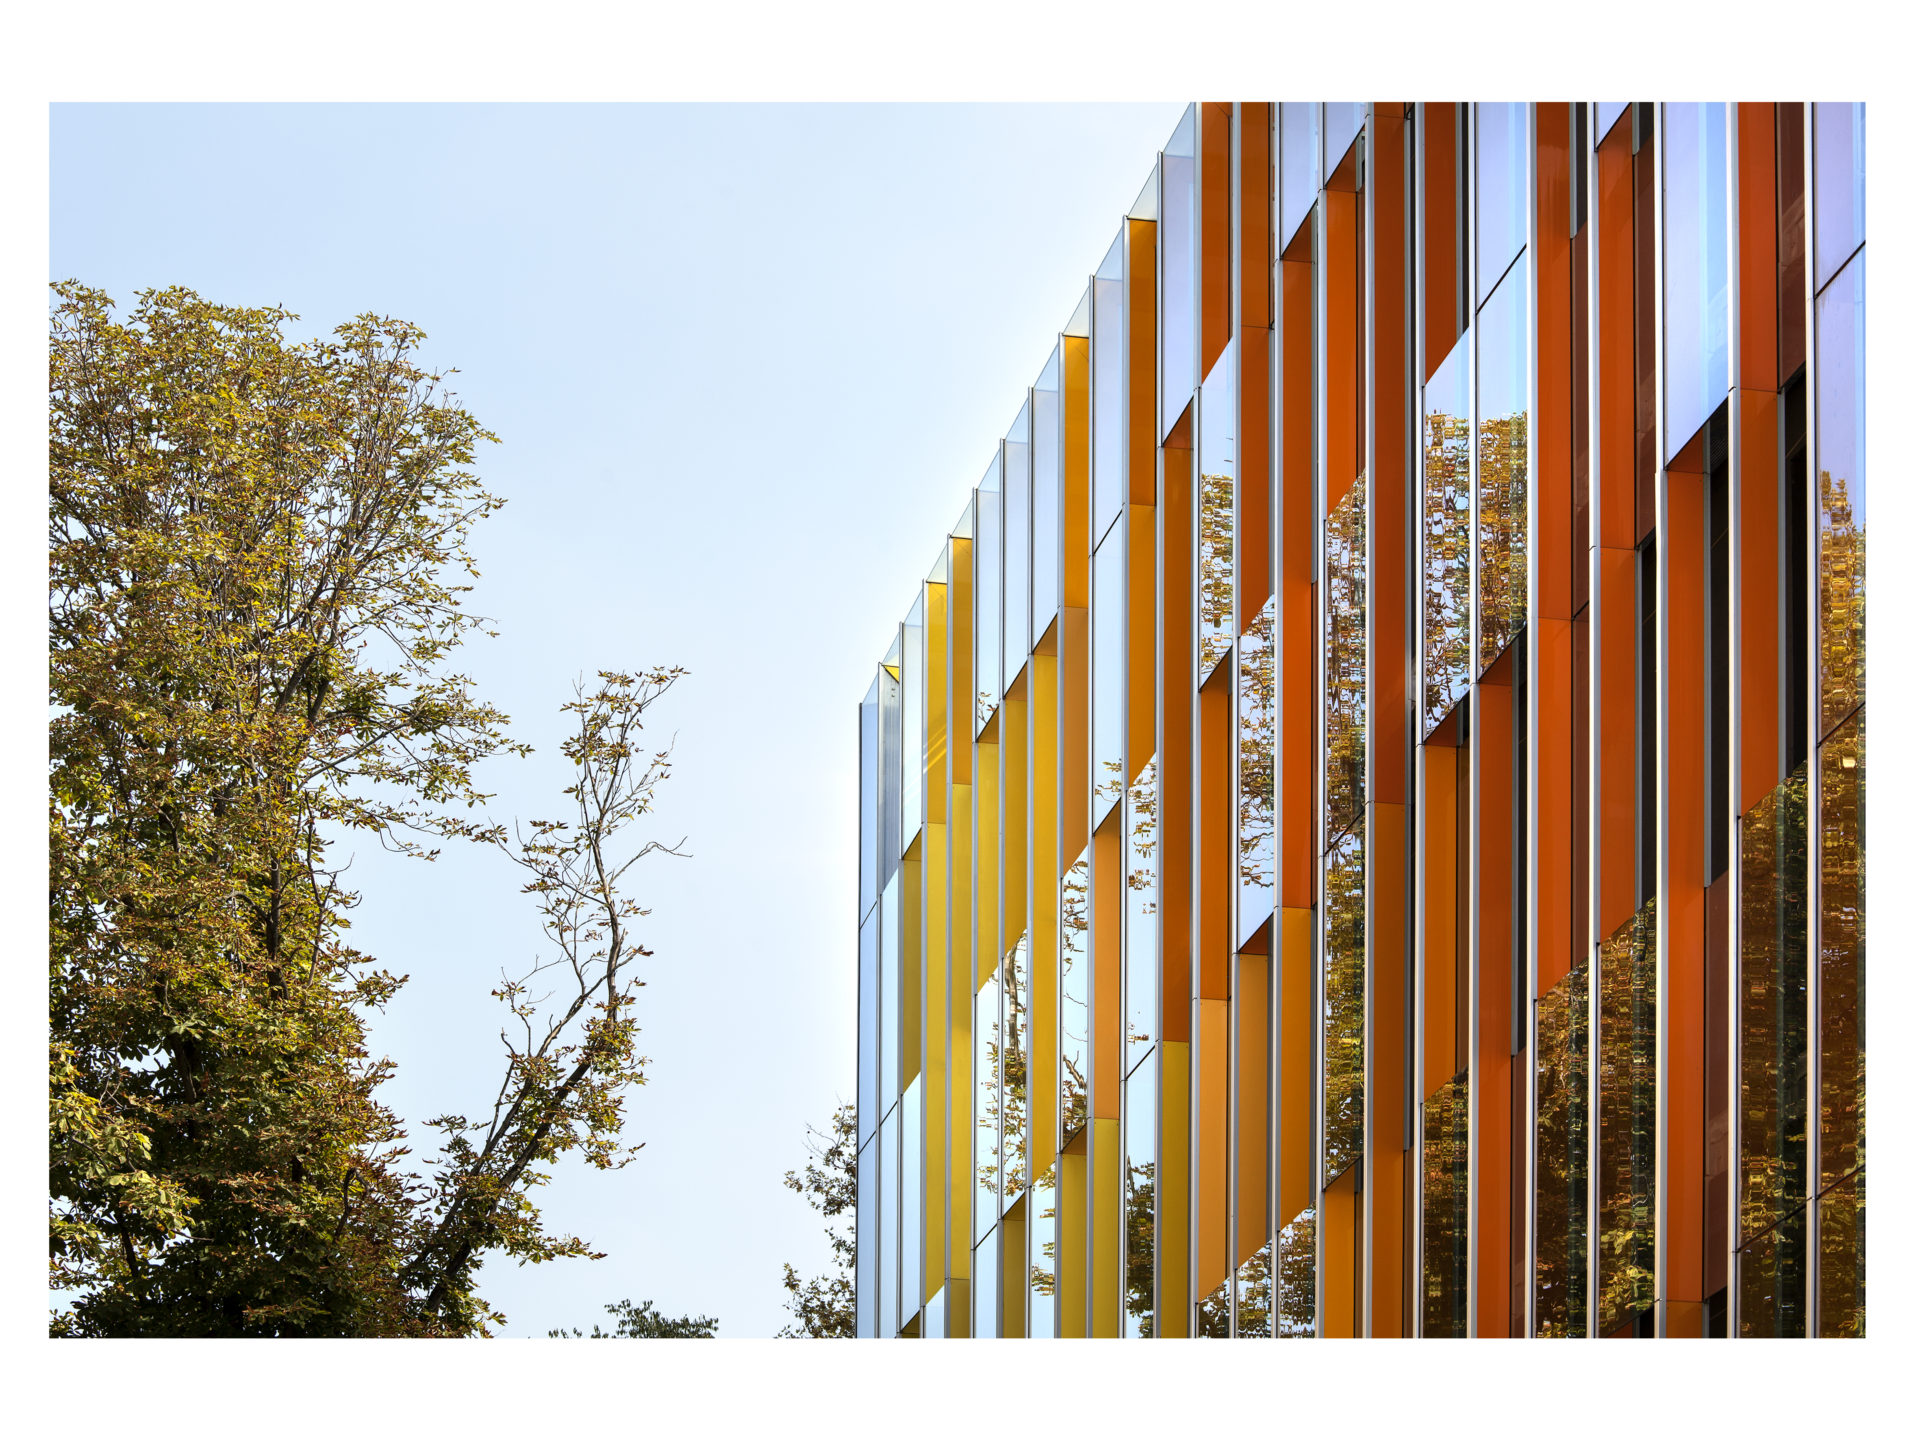 Children's Hospital in Milan, Italy by OBR (Paolo Brescia and Tommaso Principi) (photo: Mariela Apollonio).